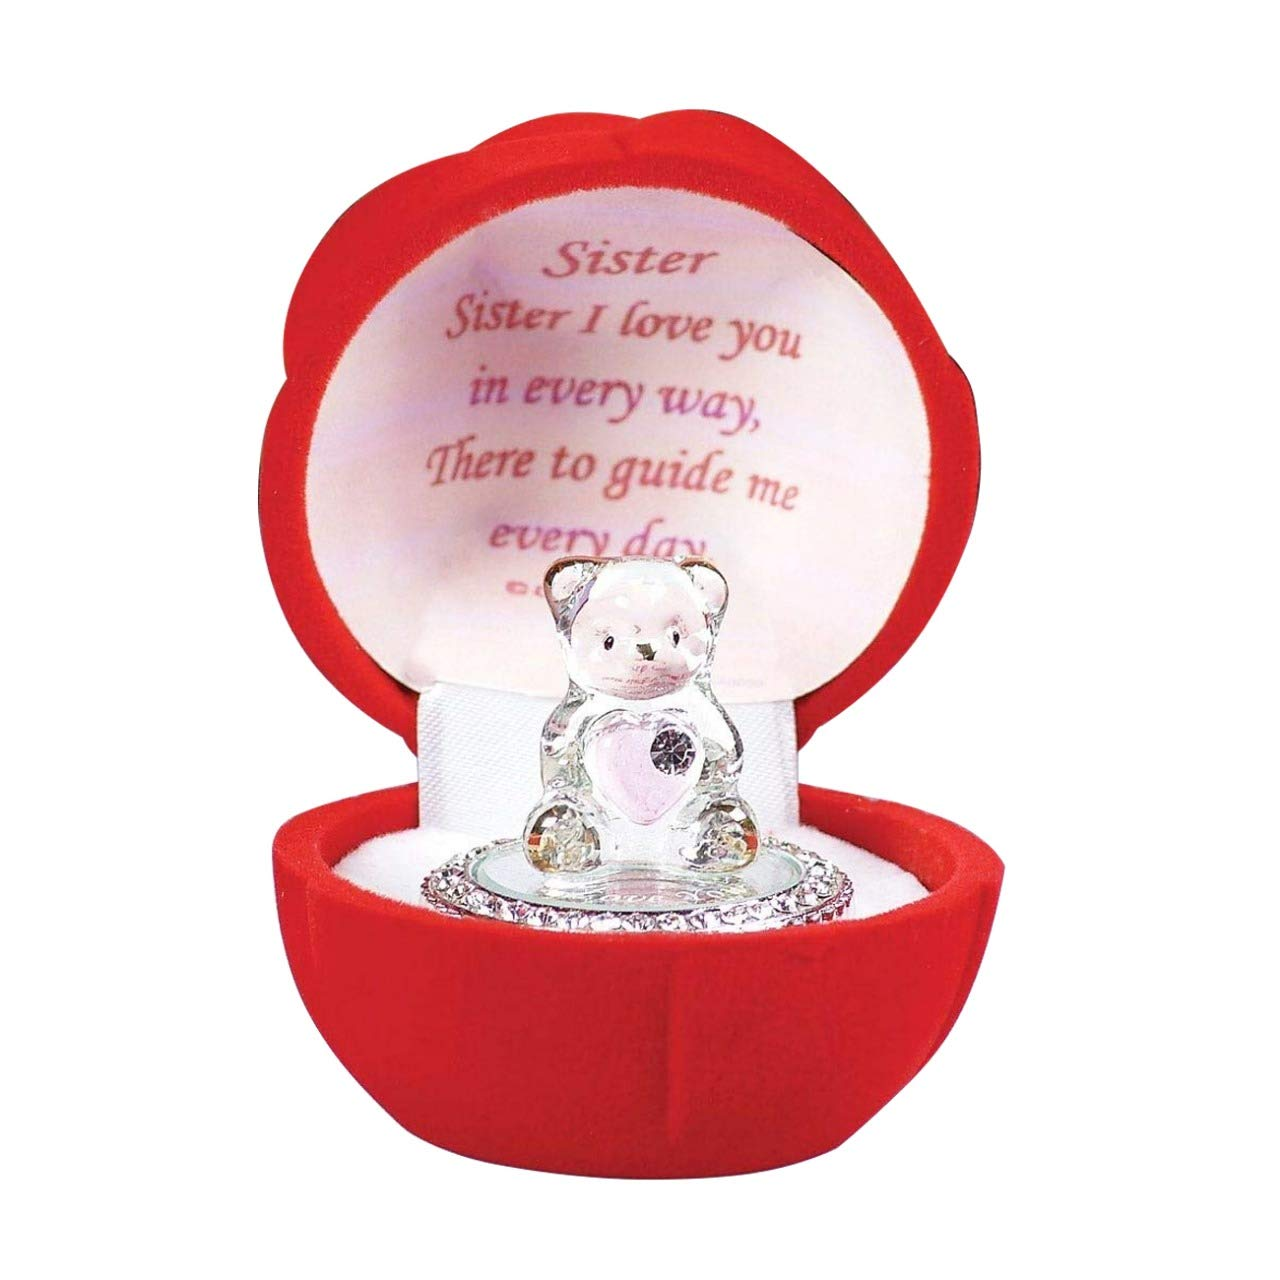 Glass bear in Red Rose Box for a Special Sister Gift Birthday, Christmas, Any Occasion Present Safri®